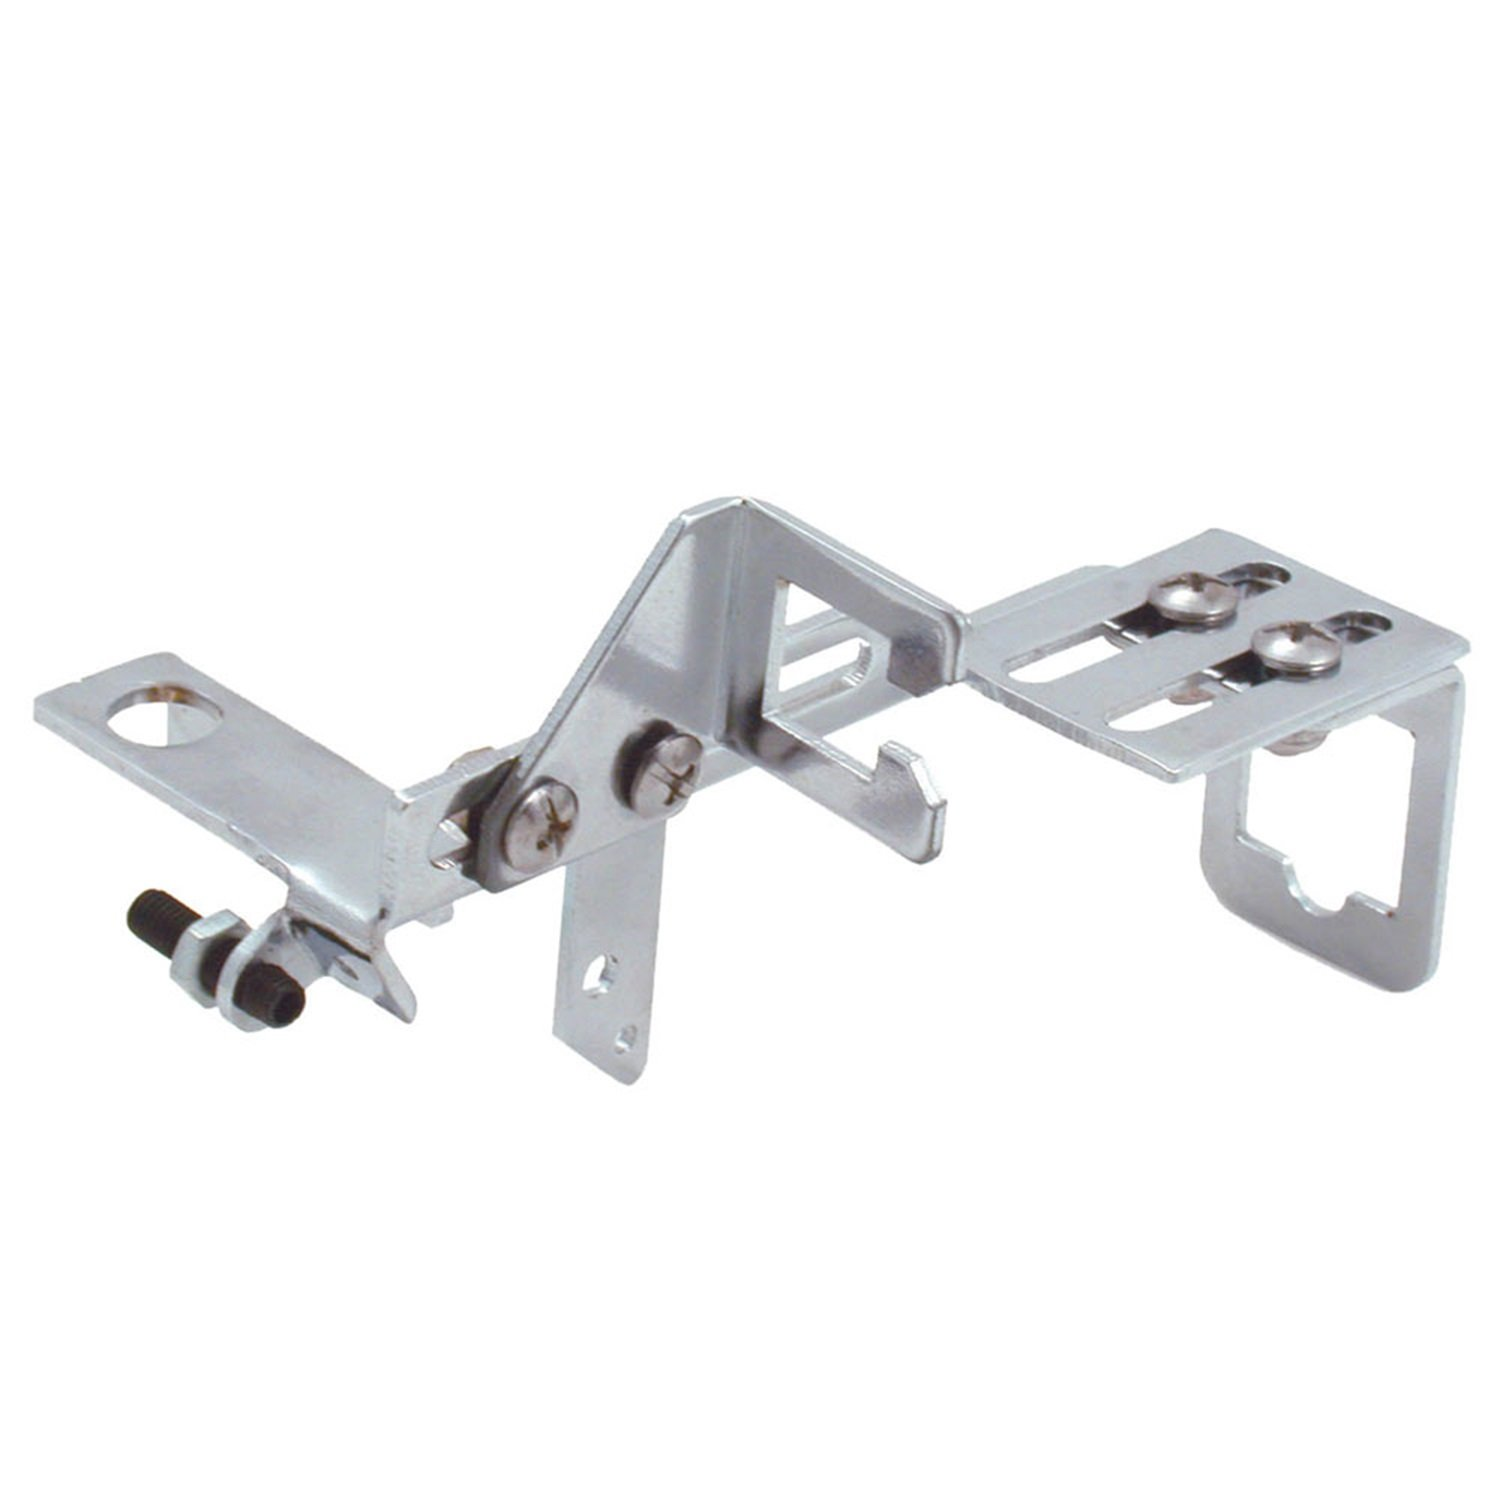 Spectre Performance 24283 Throttle Cable Bracket by Spectre Performance